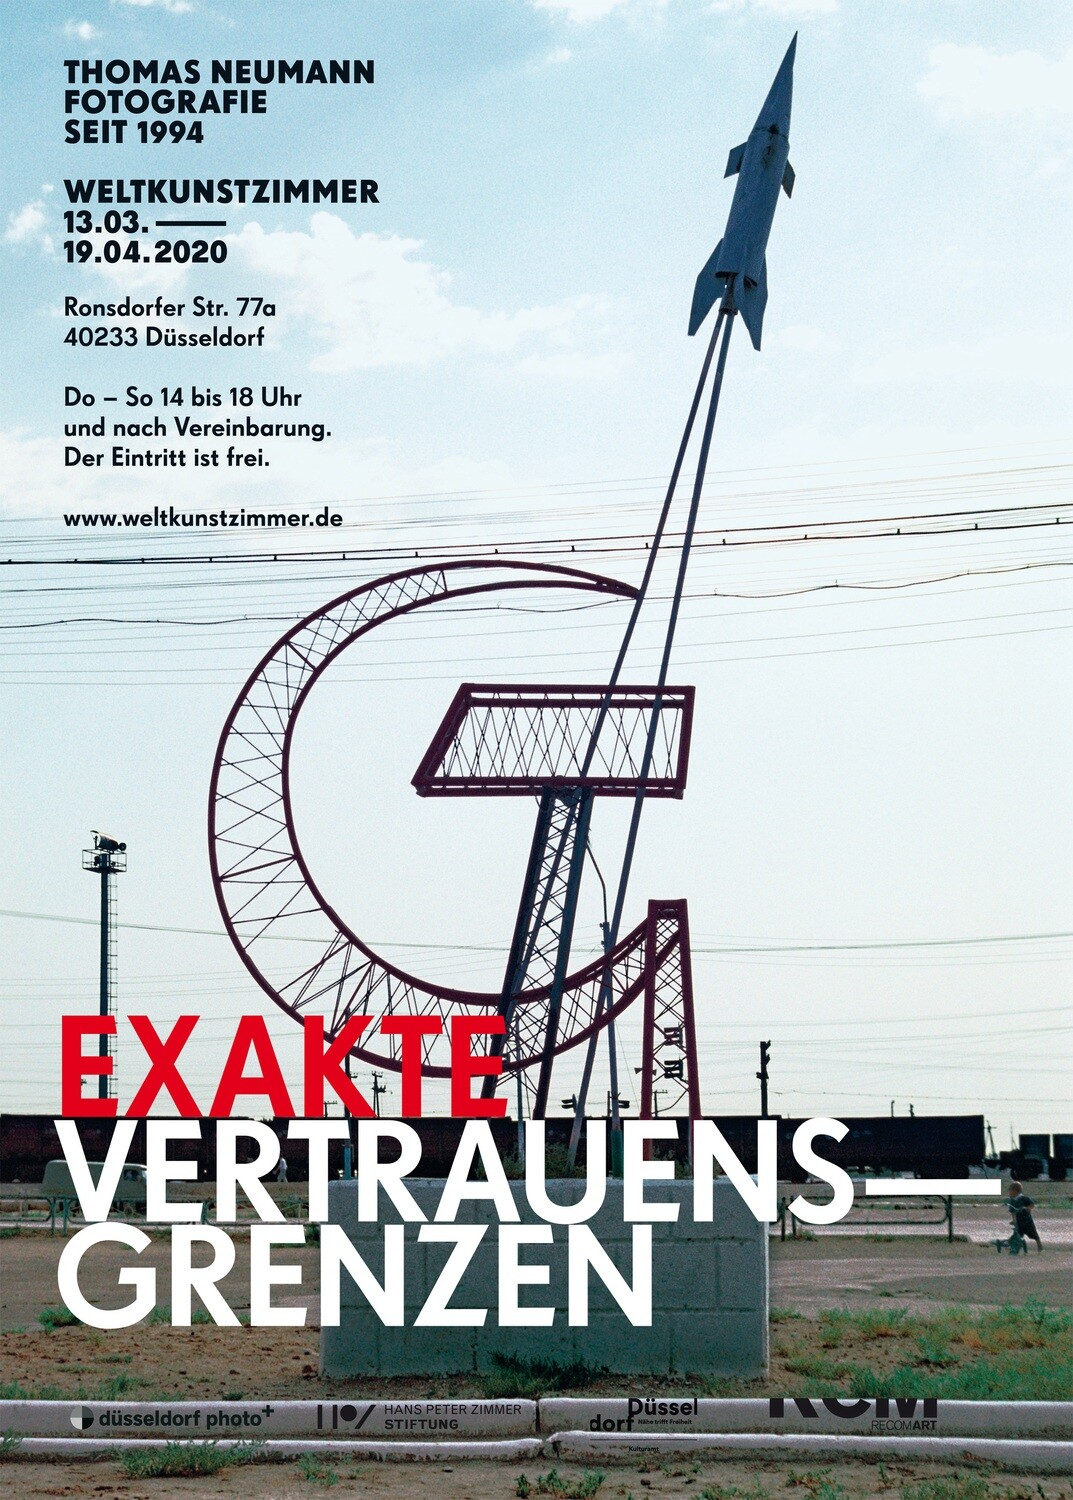 Poster Exakte Vertrauensgrenzen, A3 size, 2020, free shipping, SIGNED copies available